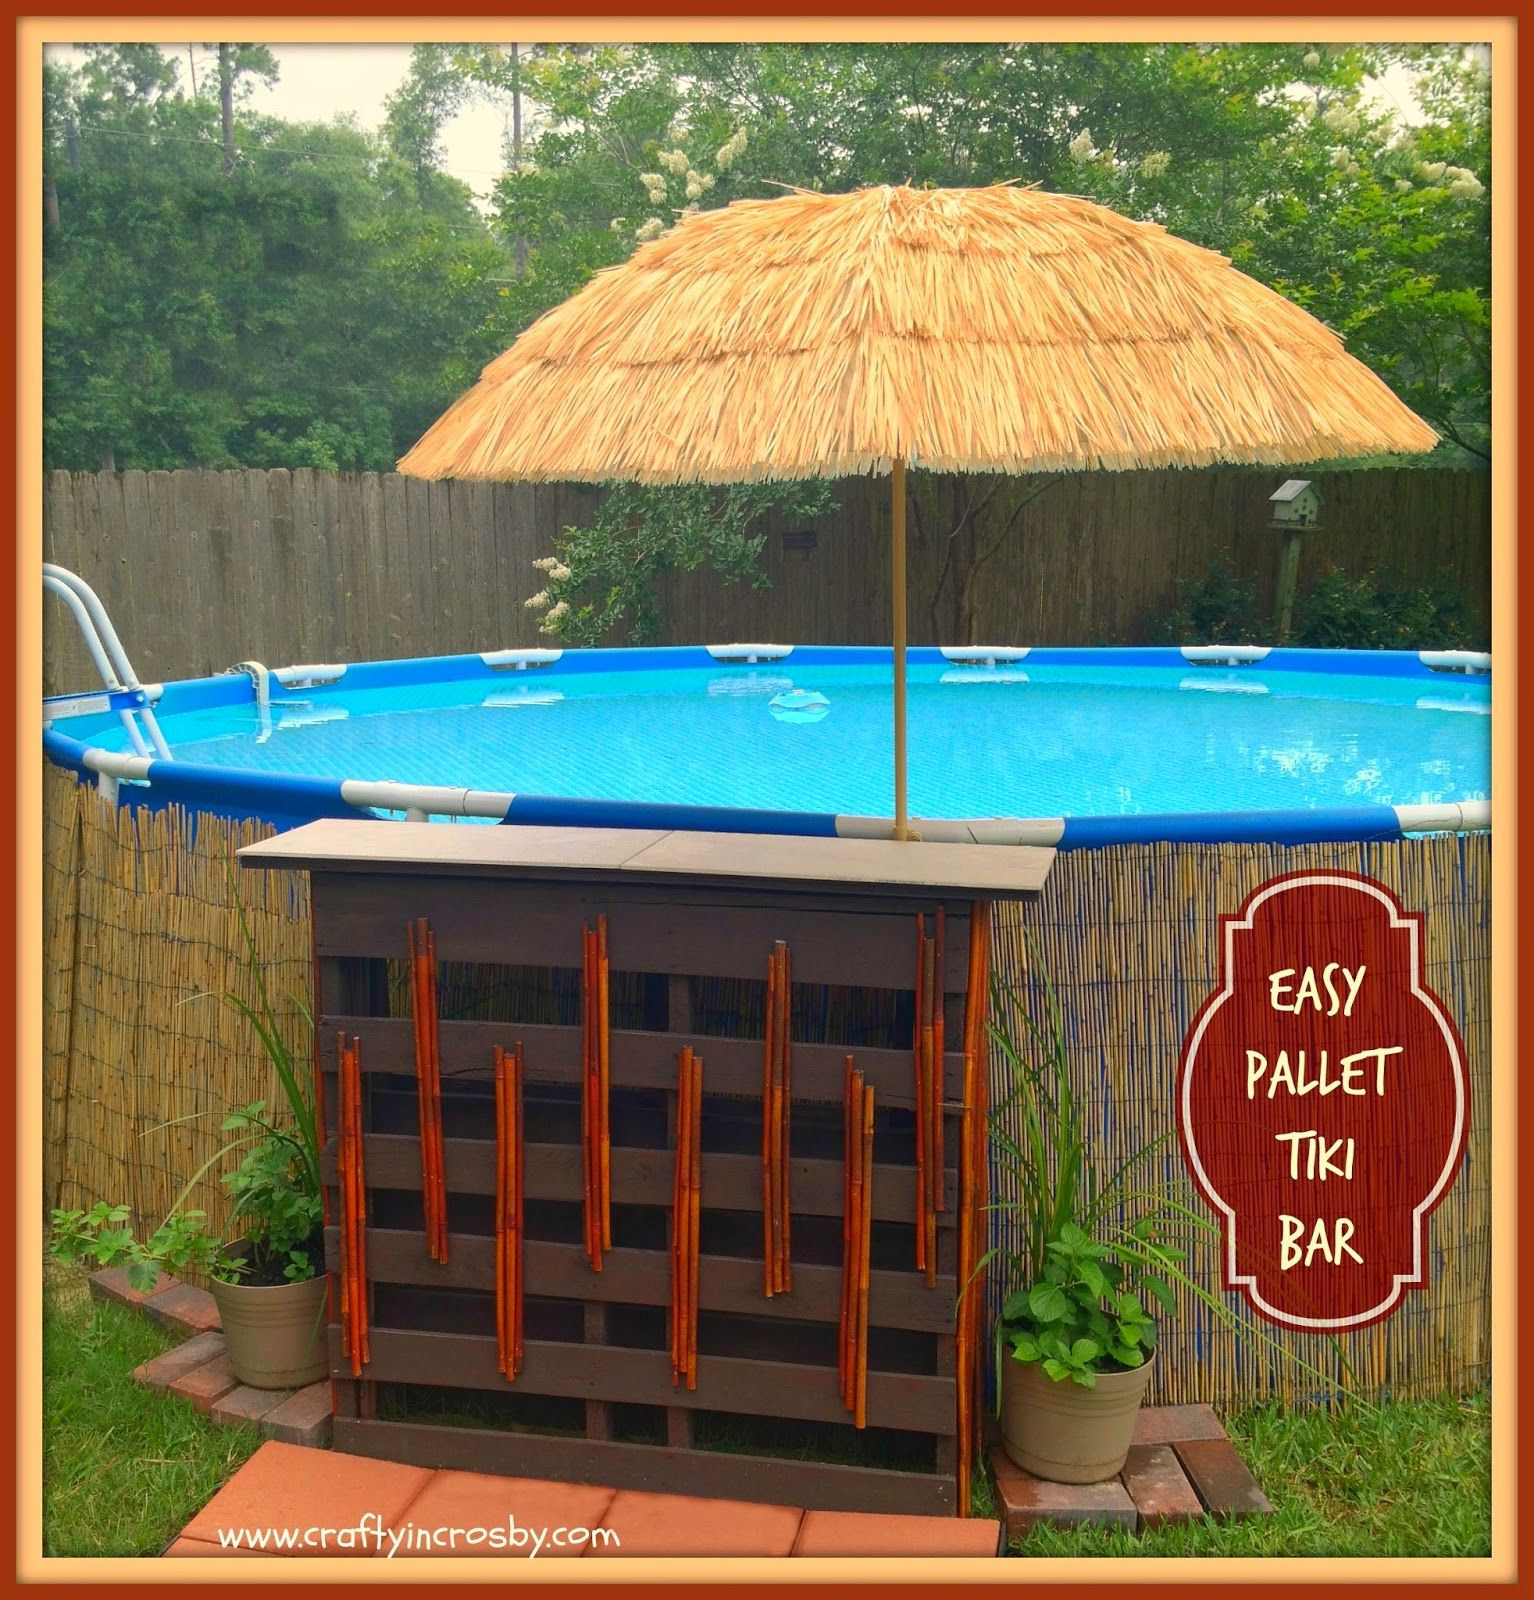 Pool Im Garten Intex Diy Pallet Tiki Bar Feature Of The Day Outdoor Decor